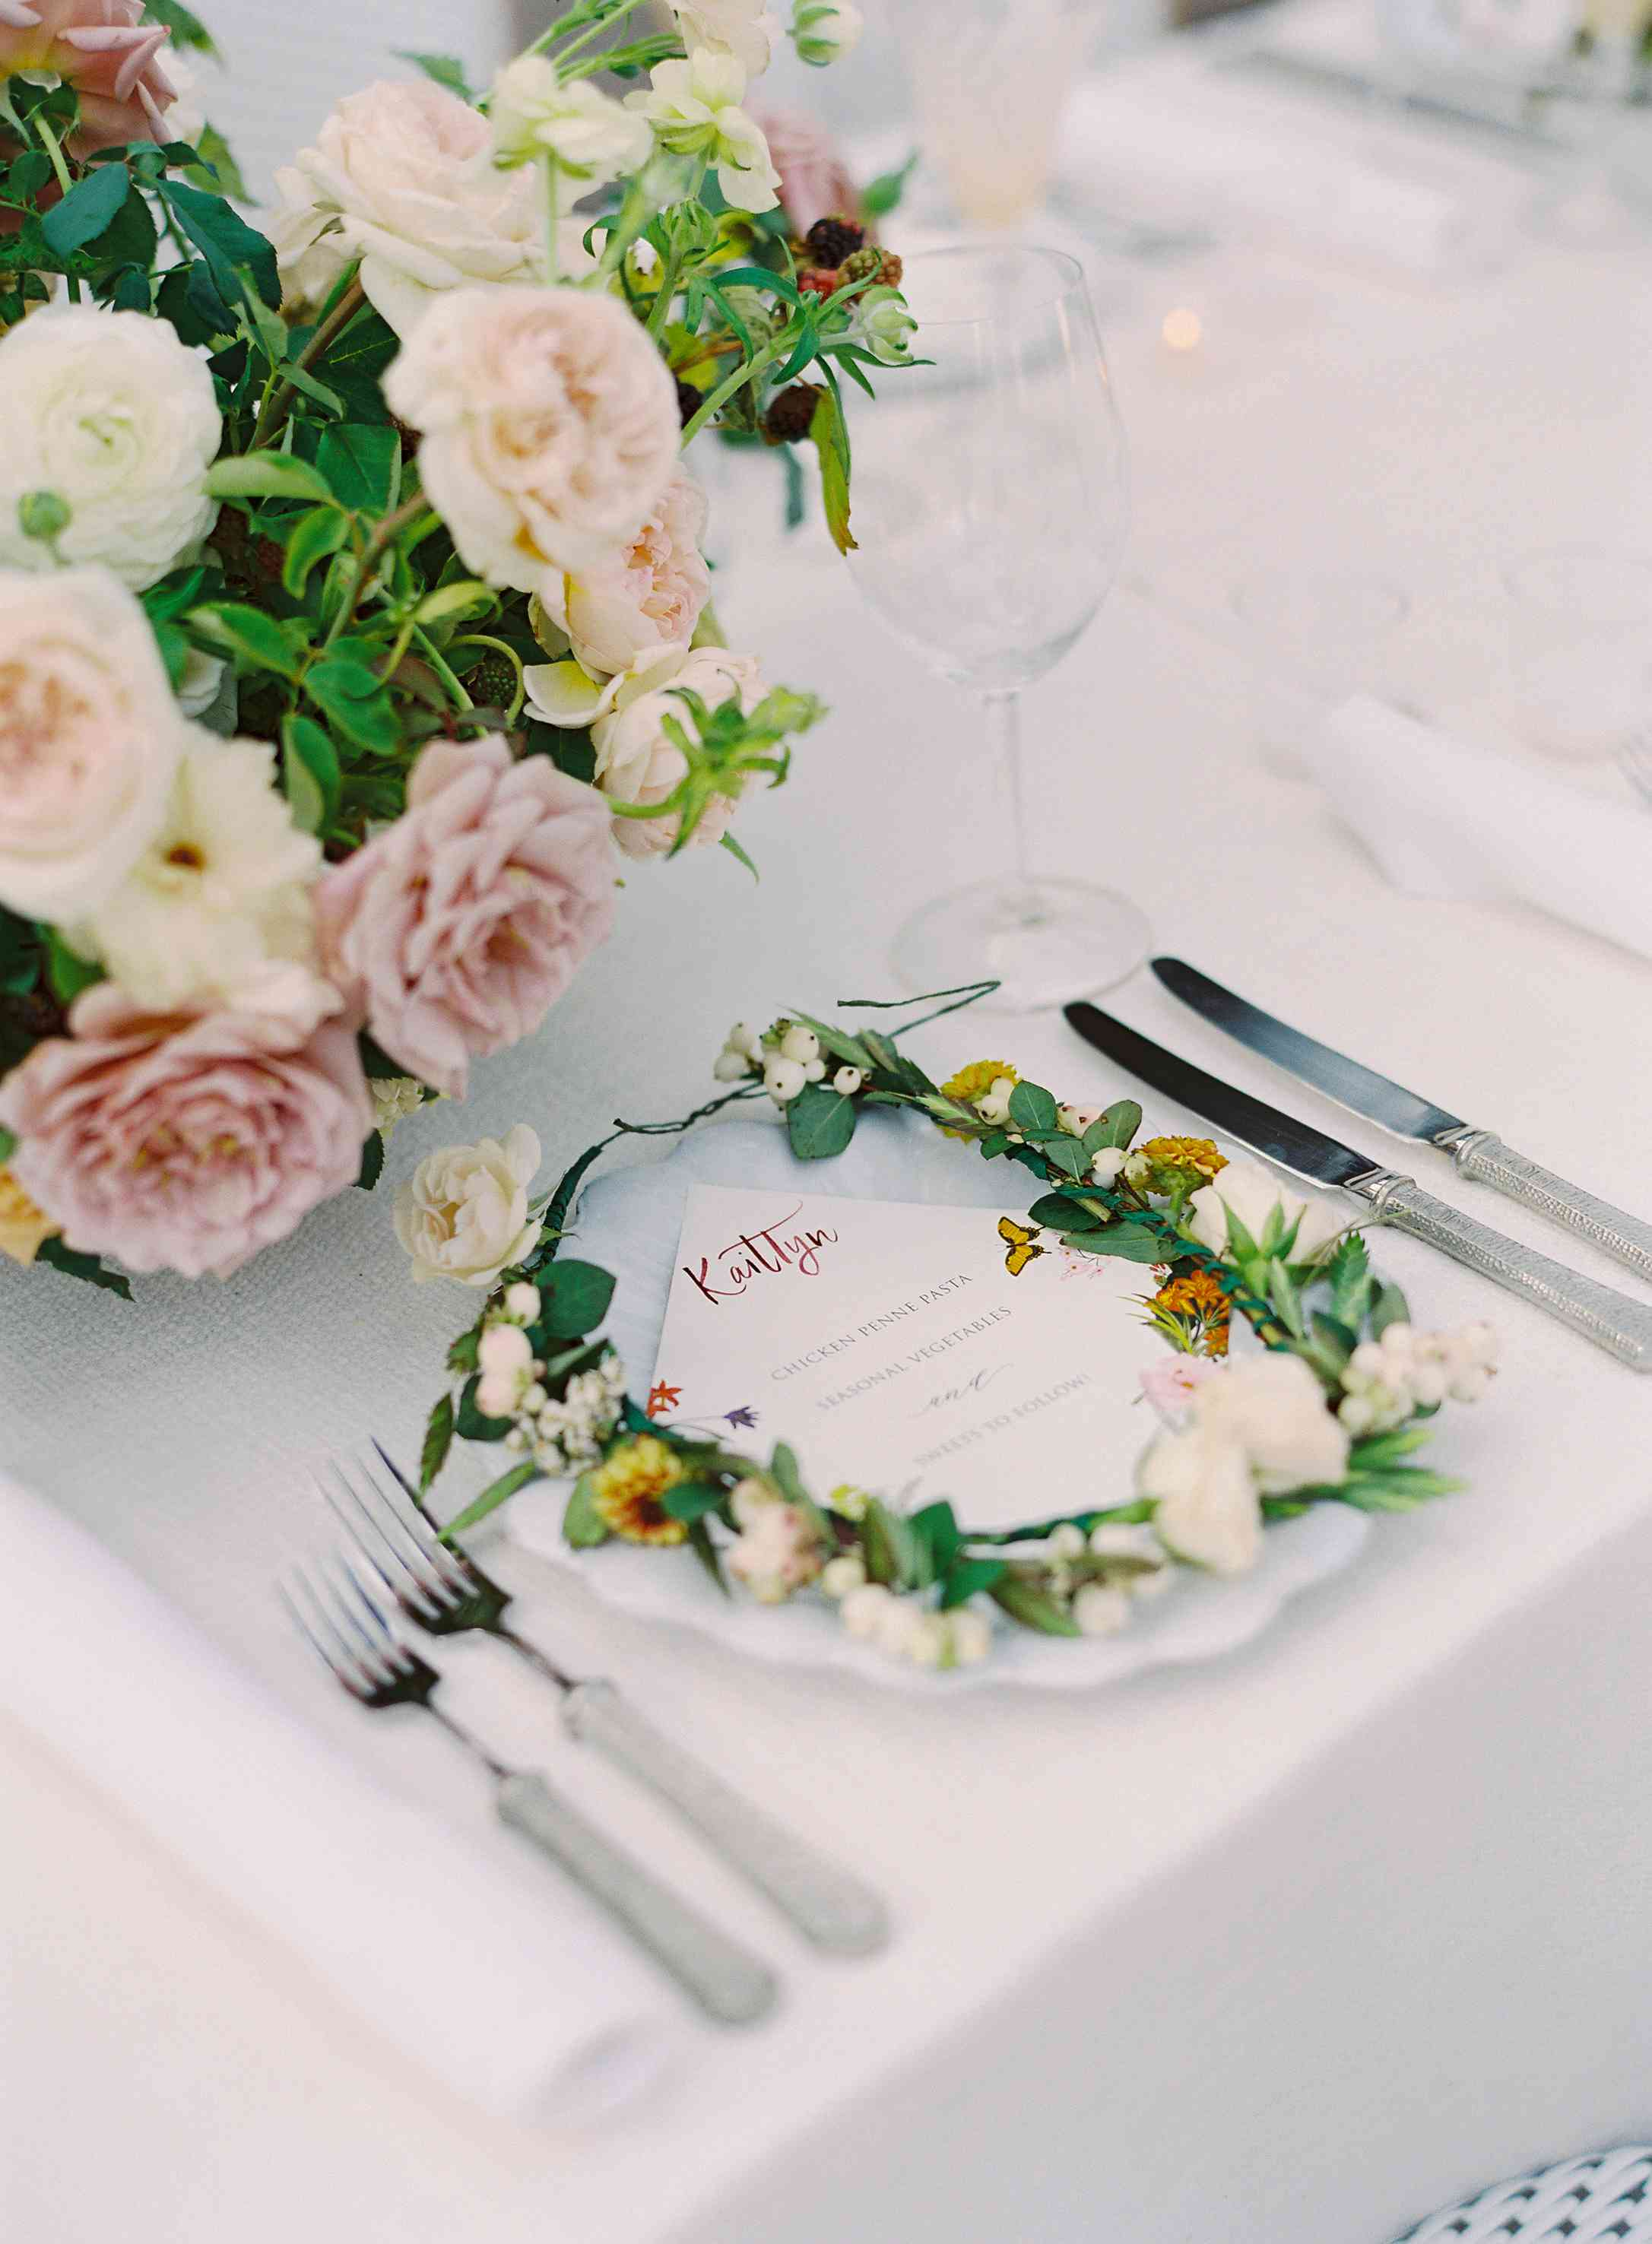 Place setting with floral crown